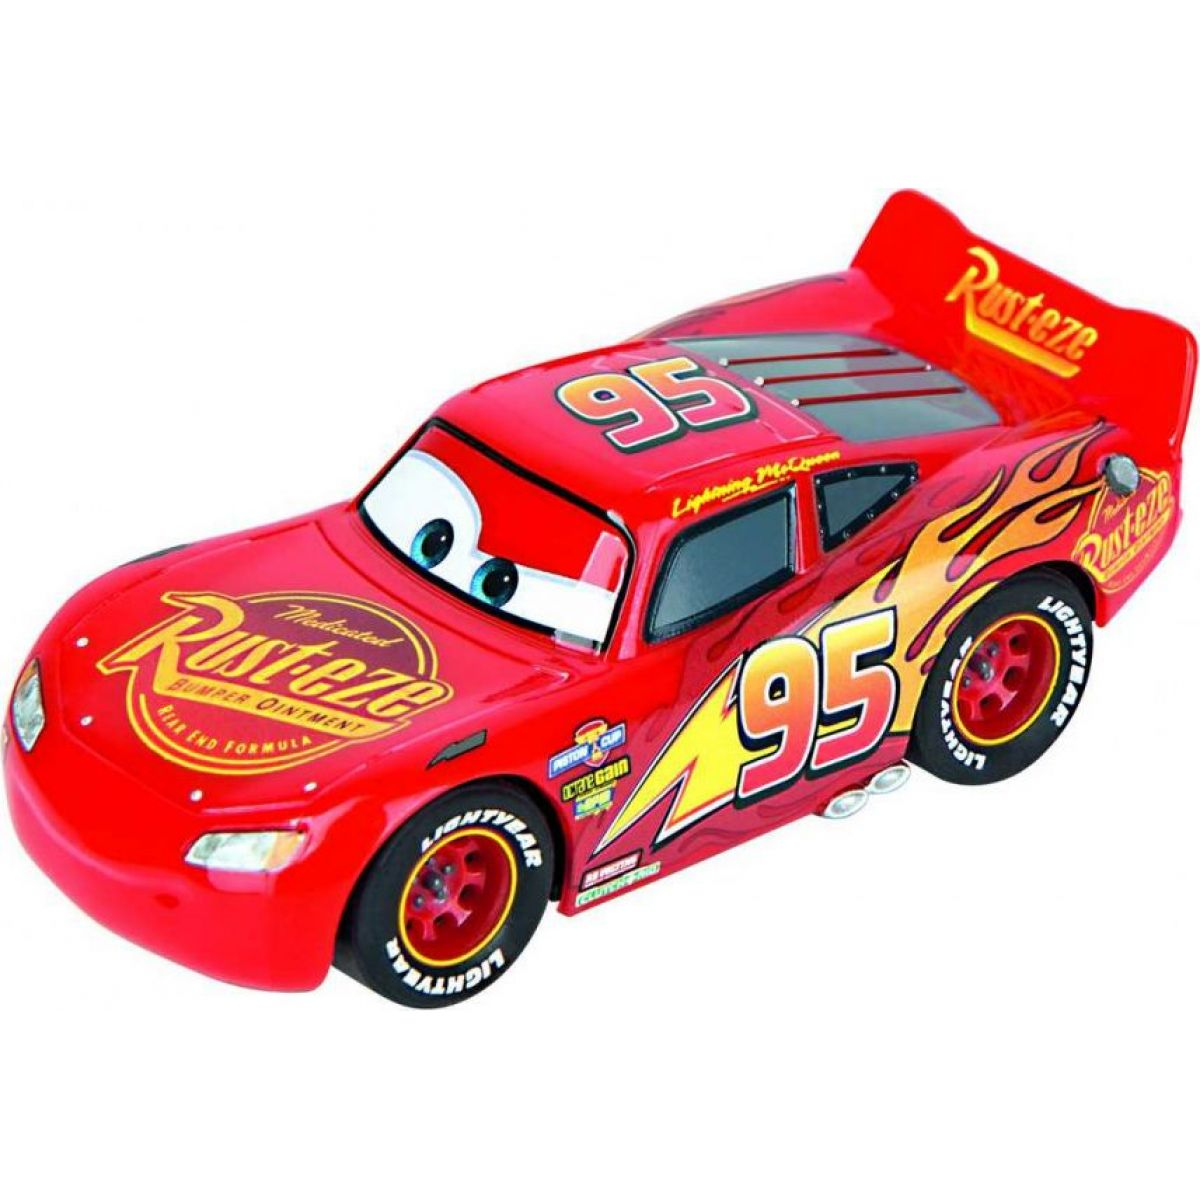 Carrera Auto First Cars Lightning McQueen